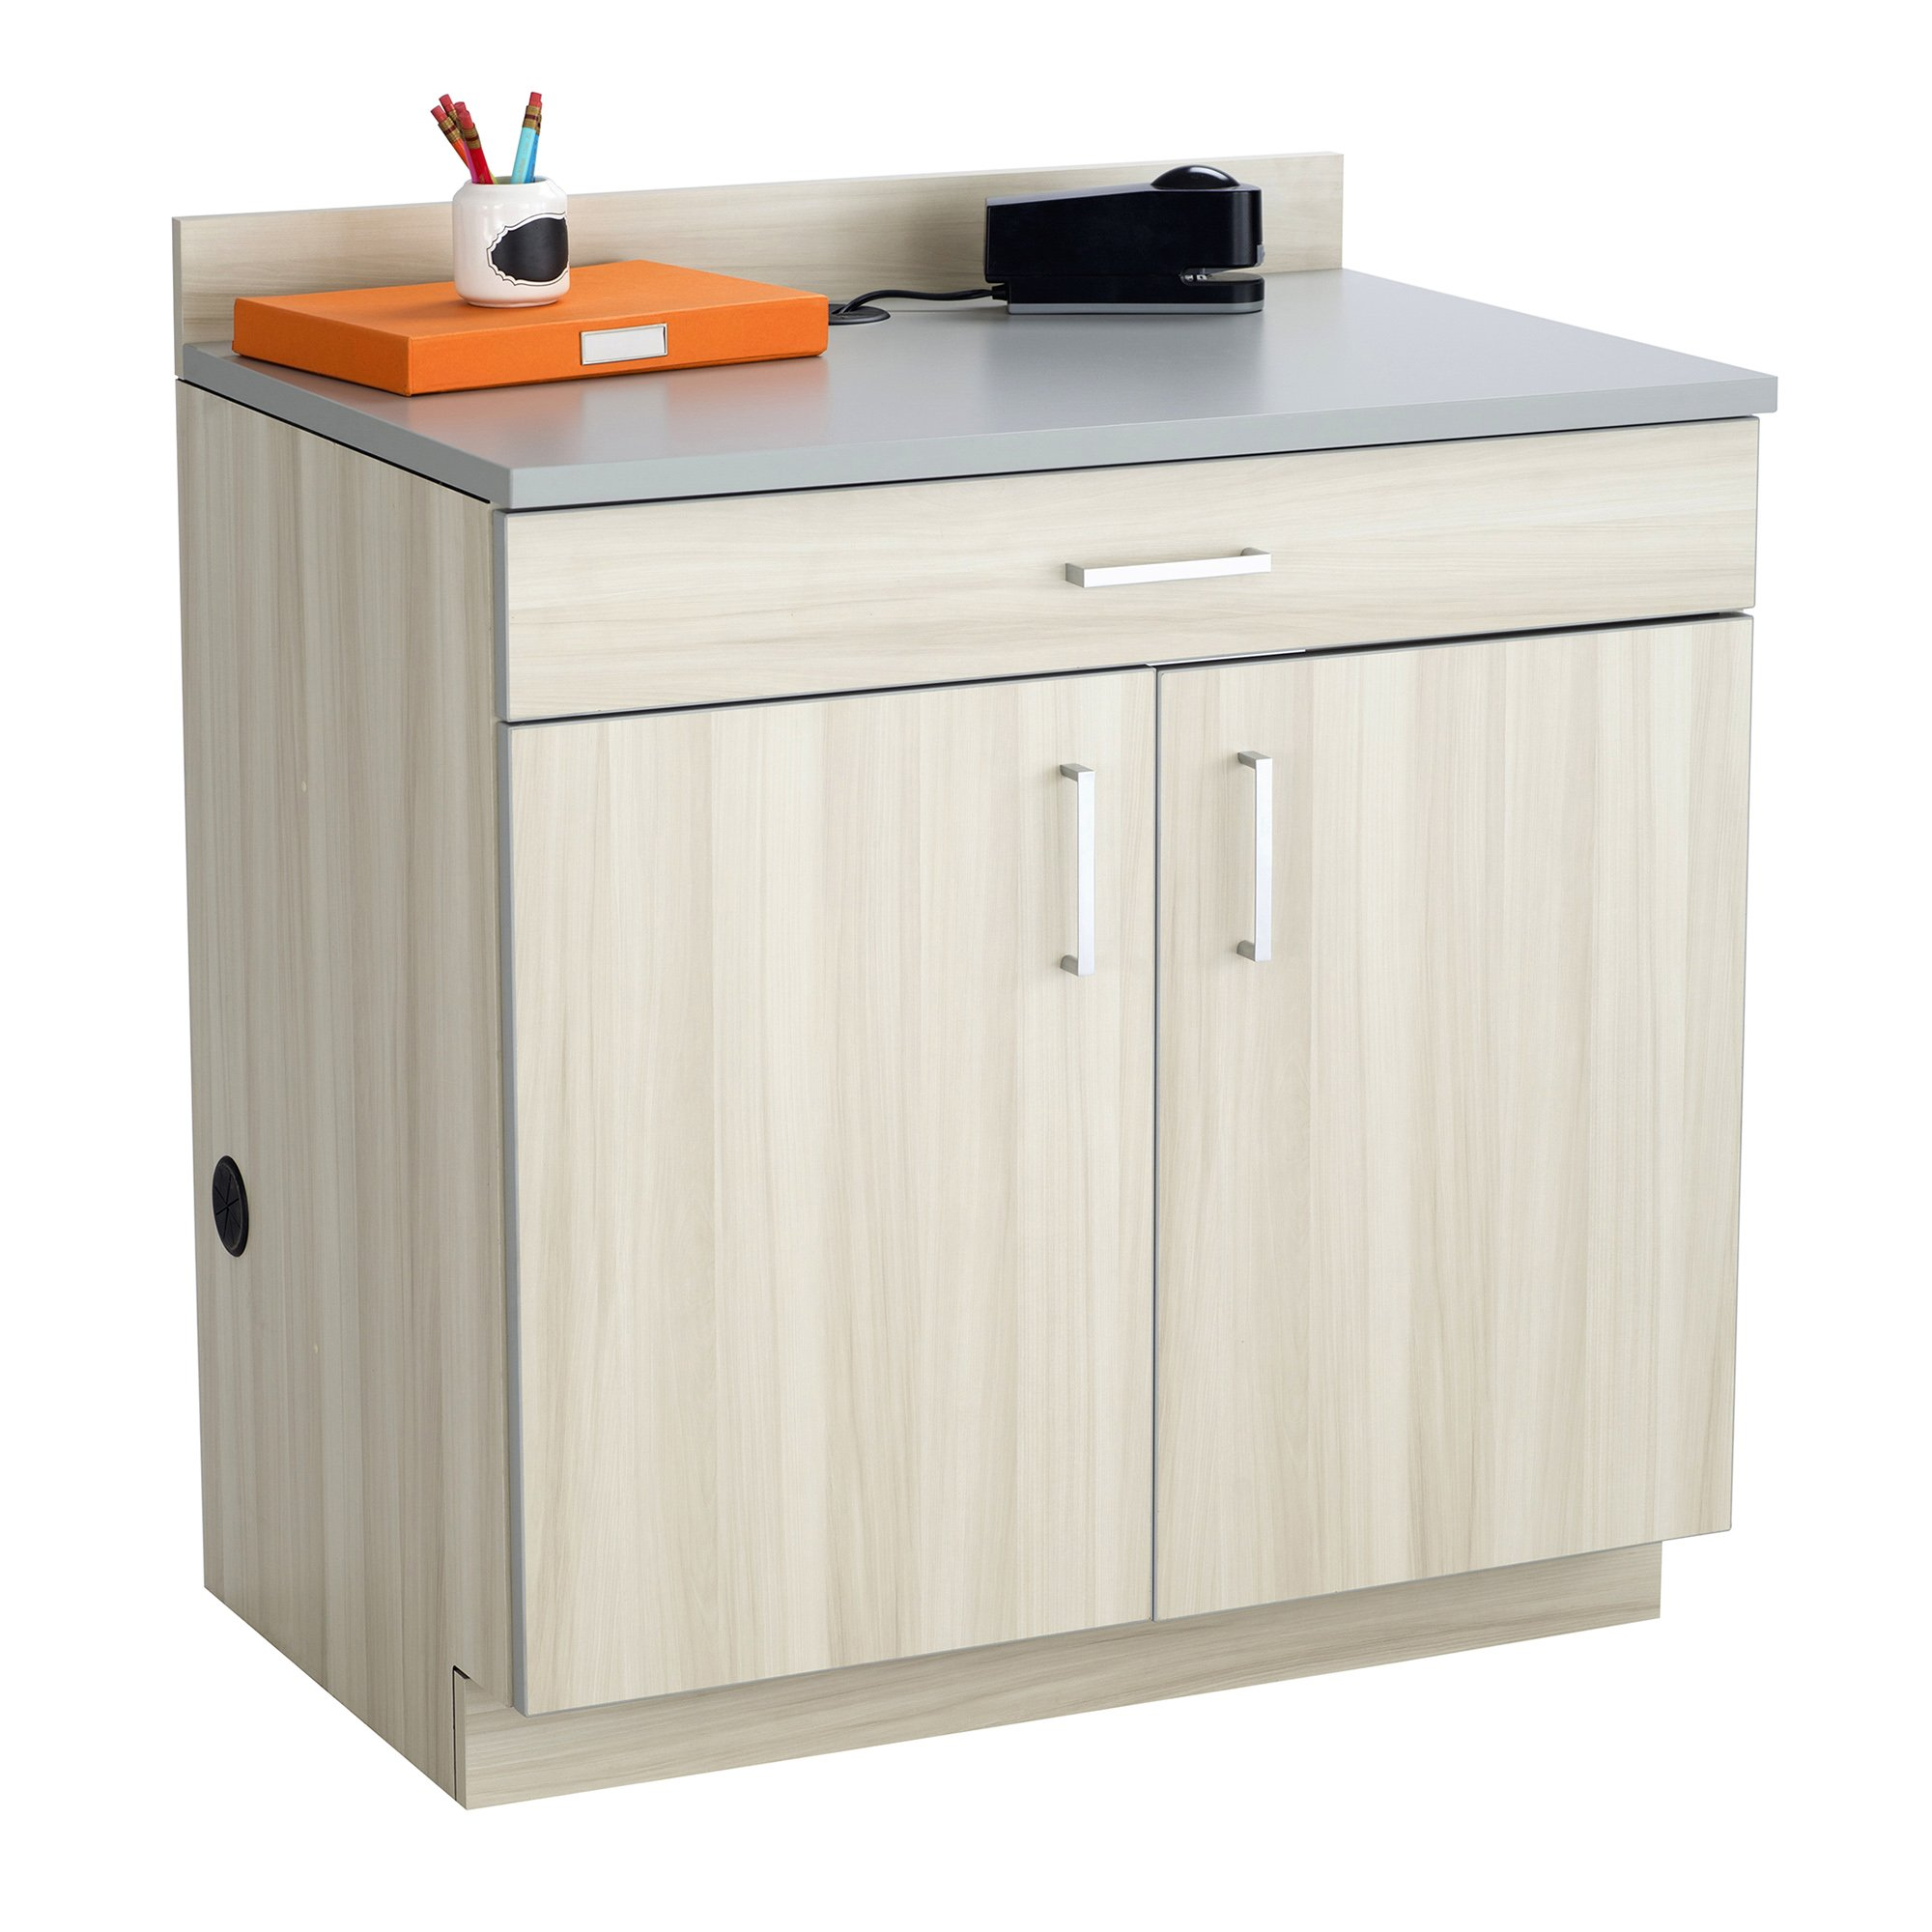 Safco Products Modular Hospitality Breakroom Base Cabinet, 2 Doors/1 Drawer/1 Adjustable Shelf, Vanilla Stix Base/Gray Top by Safco